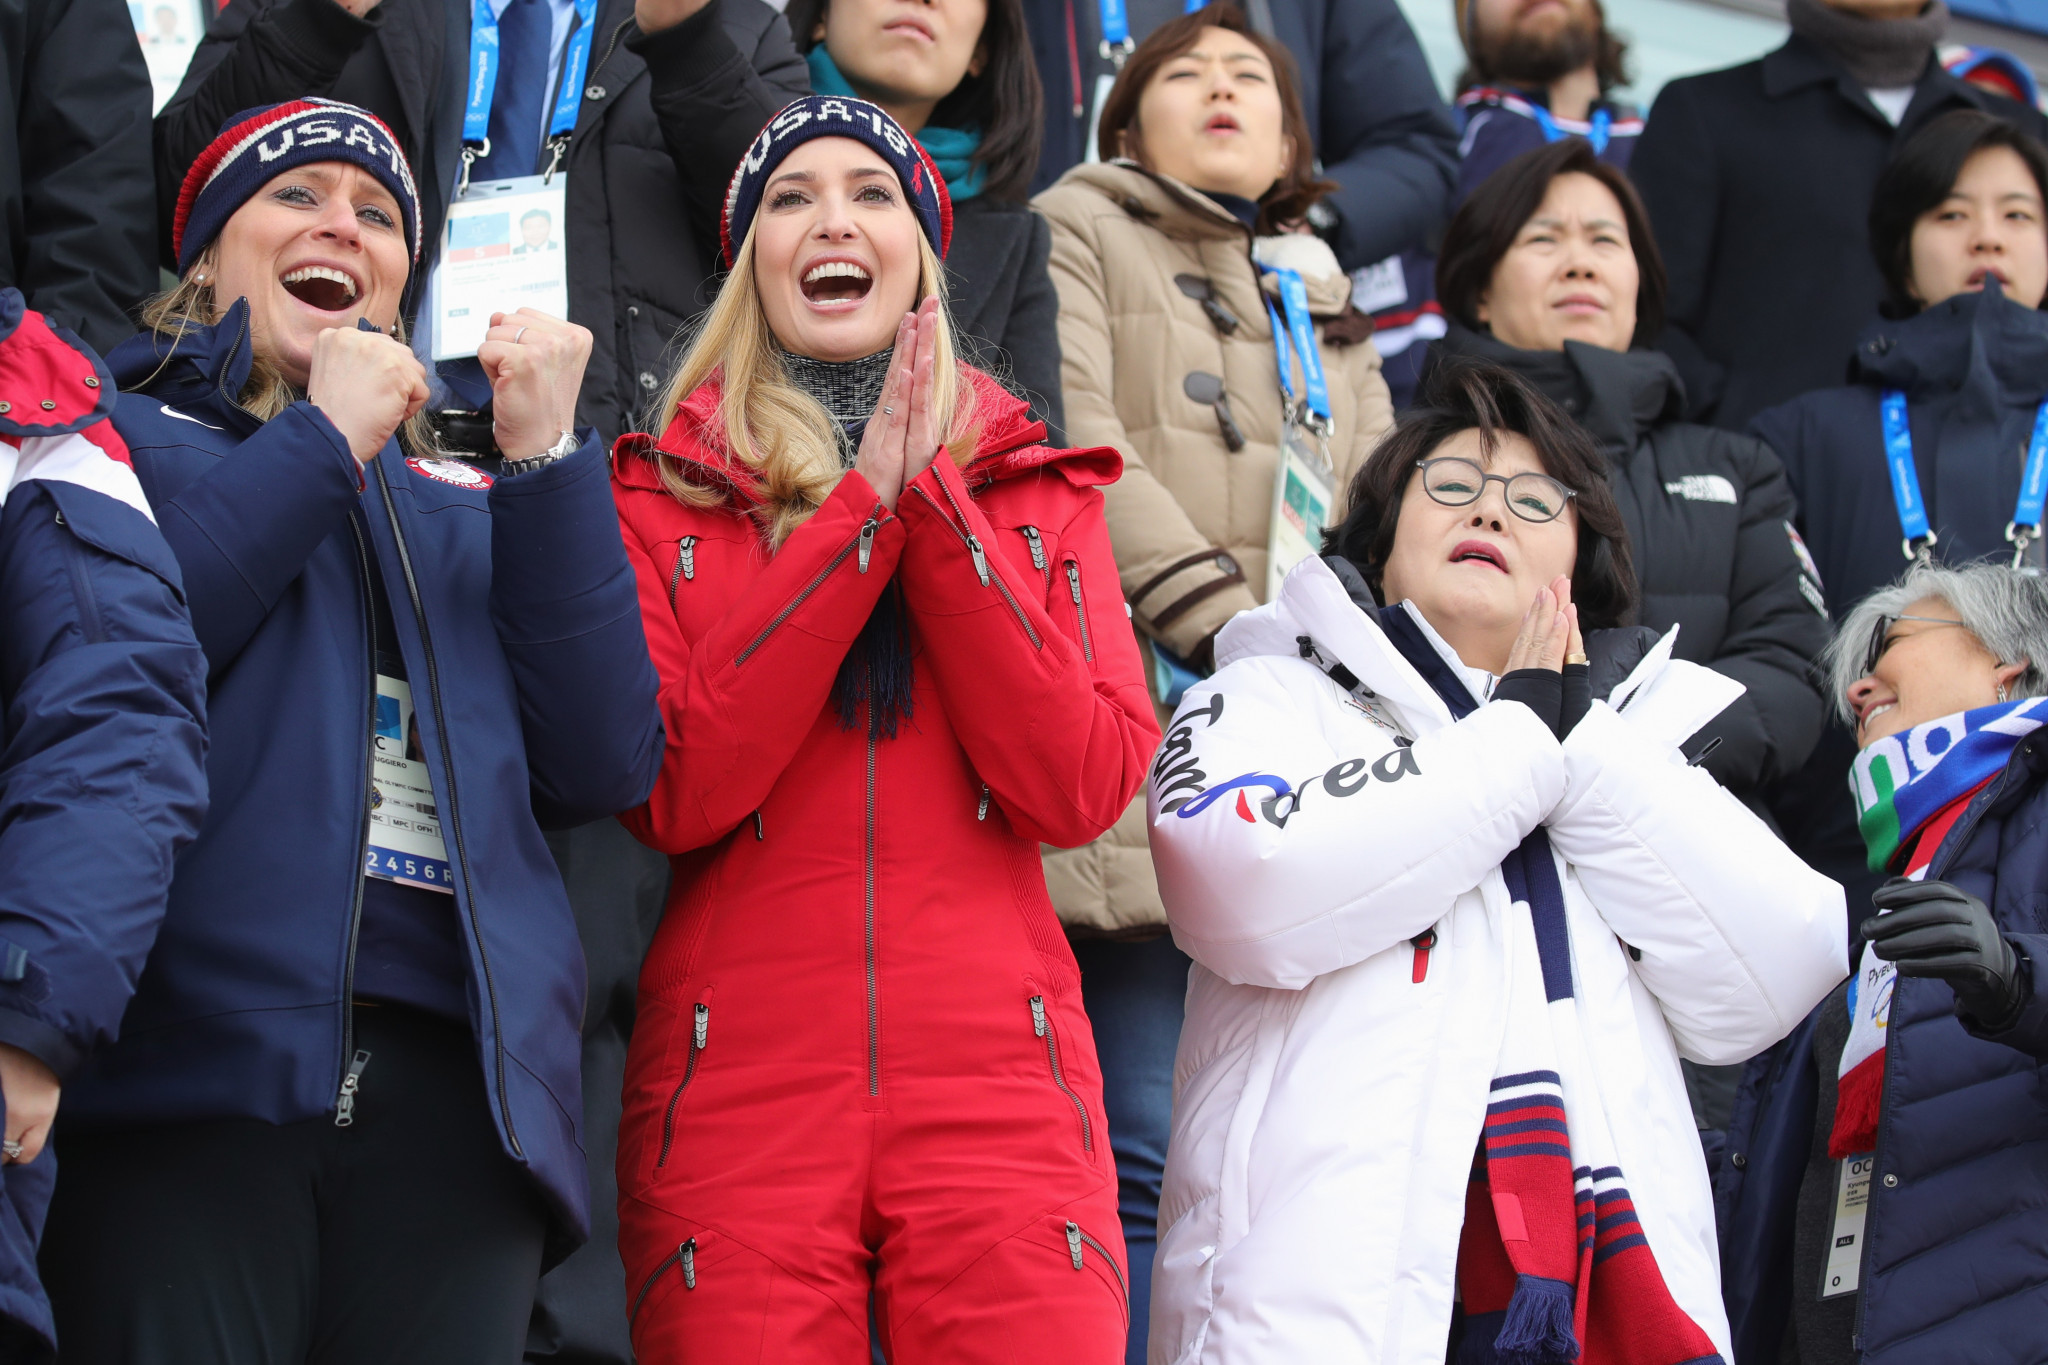 Angela Ruggiero, left, pictured alongside Ivanka Trump at last month's Winter Olympics in Pyeongchang ©Getty Images